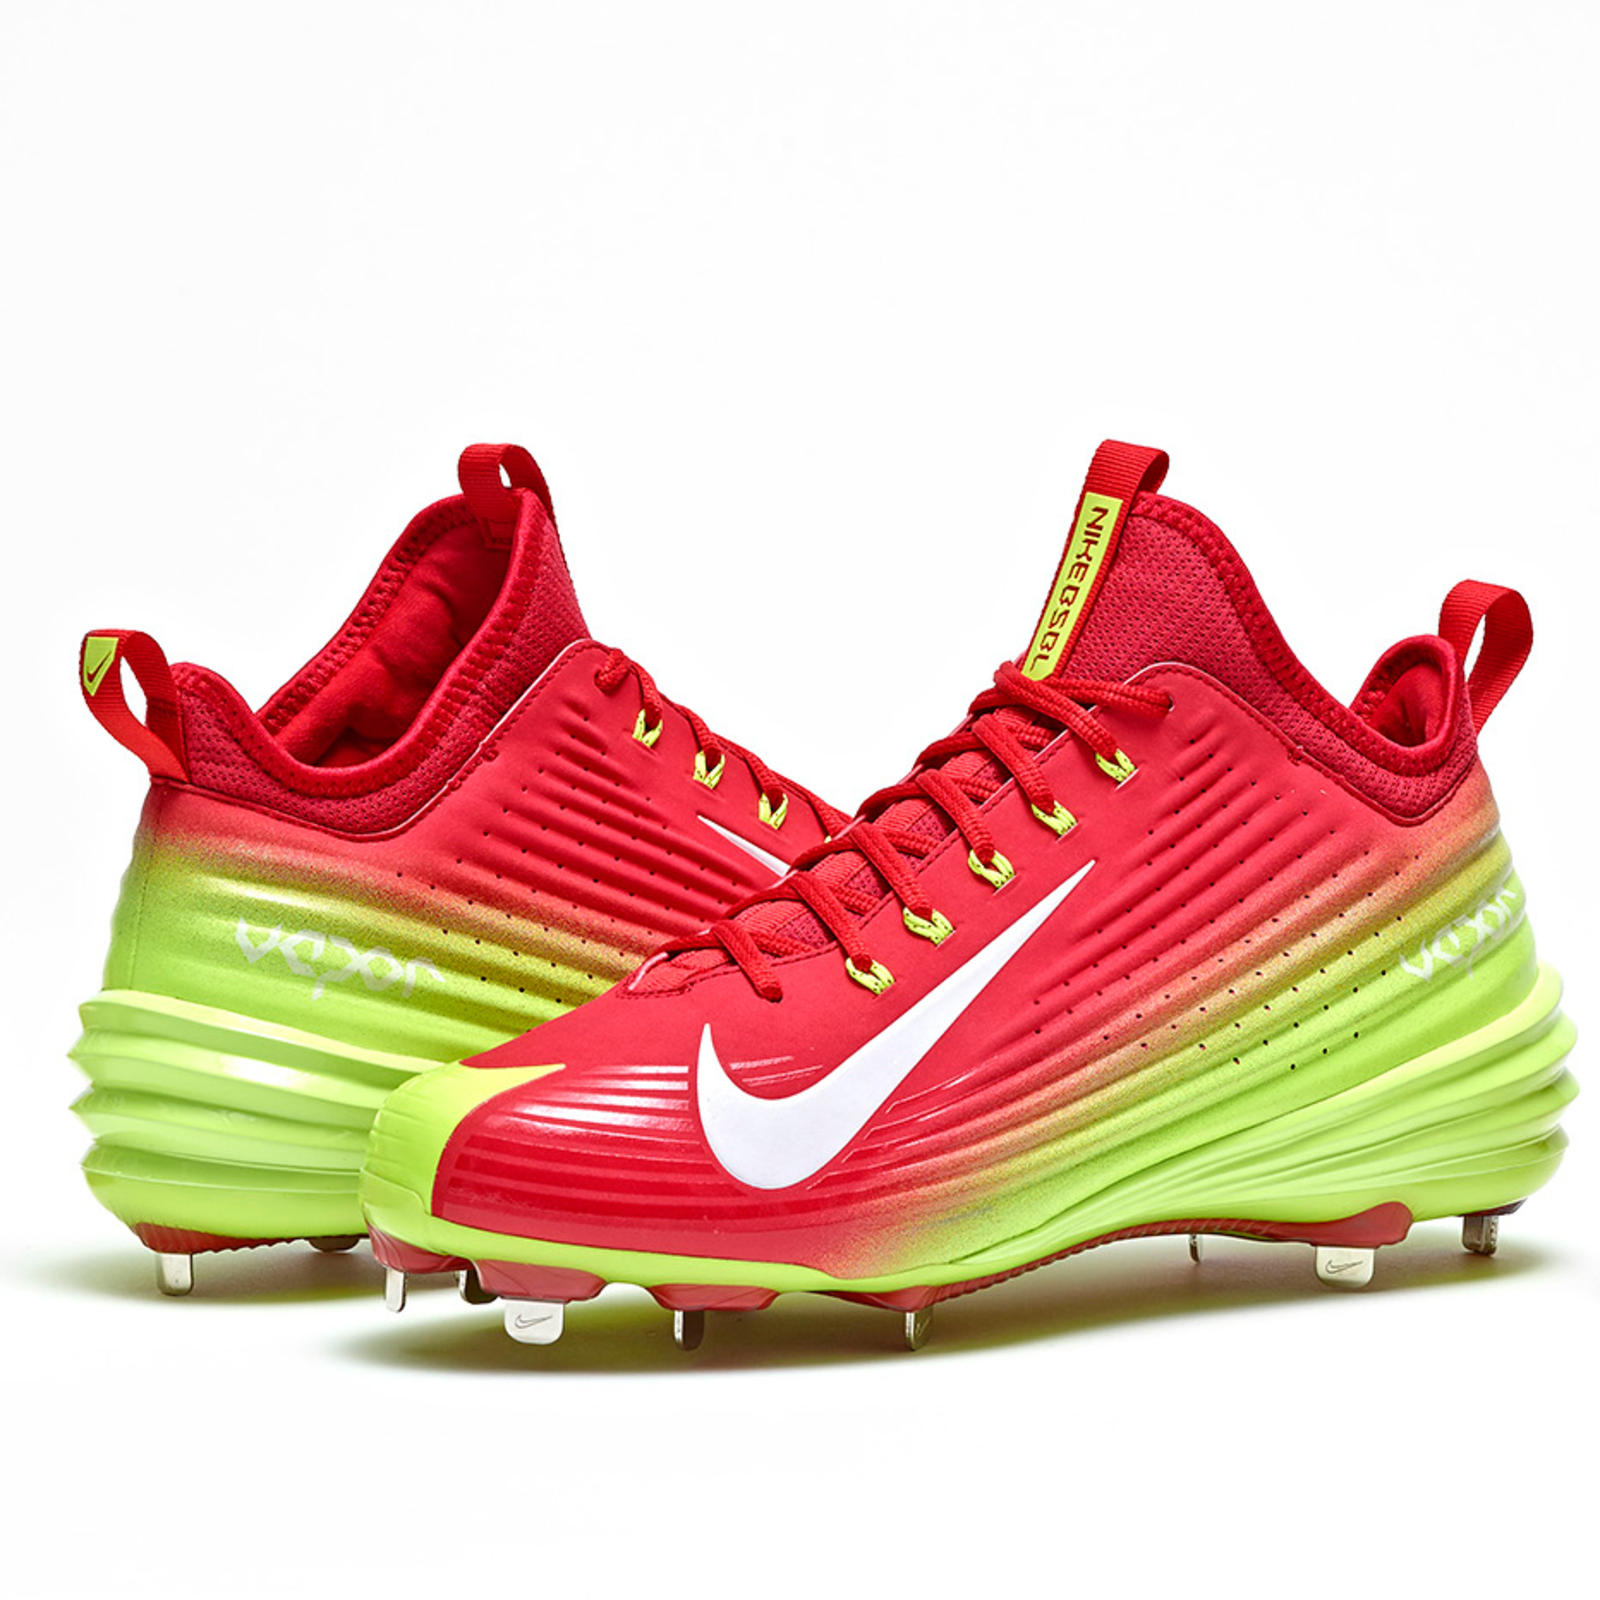 Mike Trout Shoes All Red